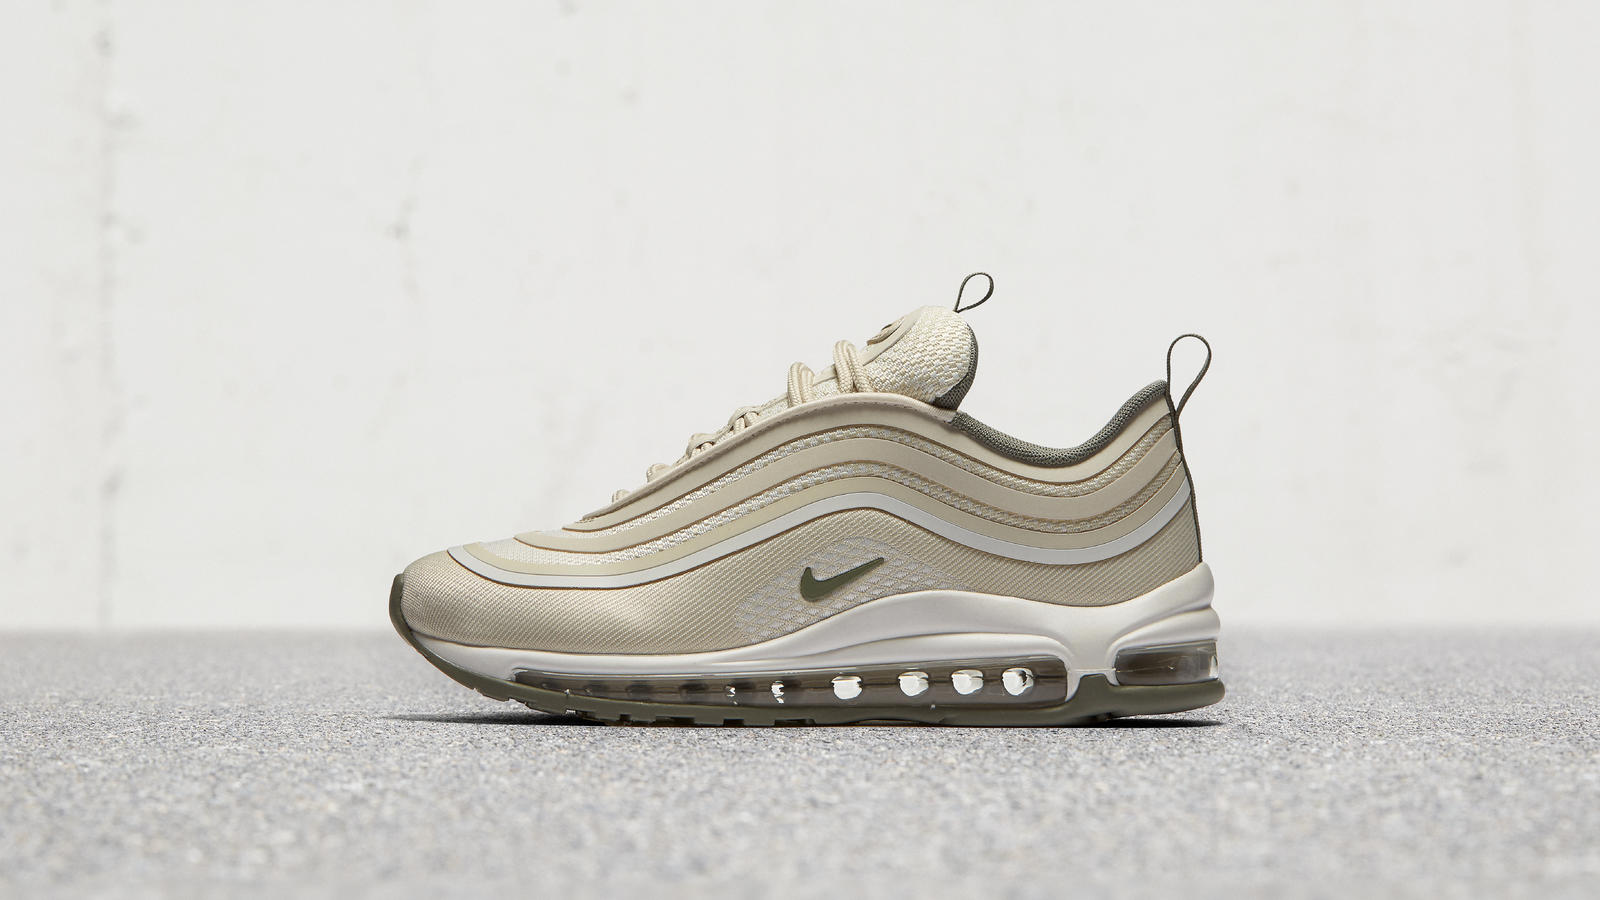 Nike Women's Air Max 97 Ultra '17 Se Lace Up Sneakers in